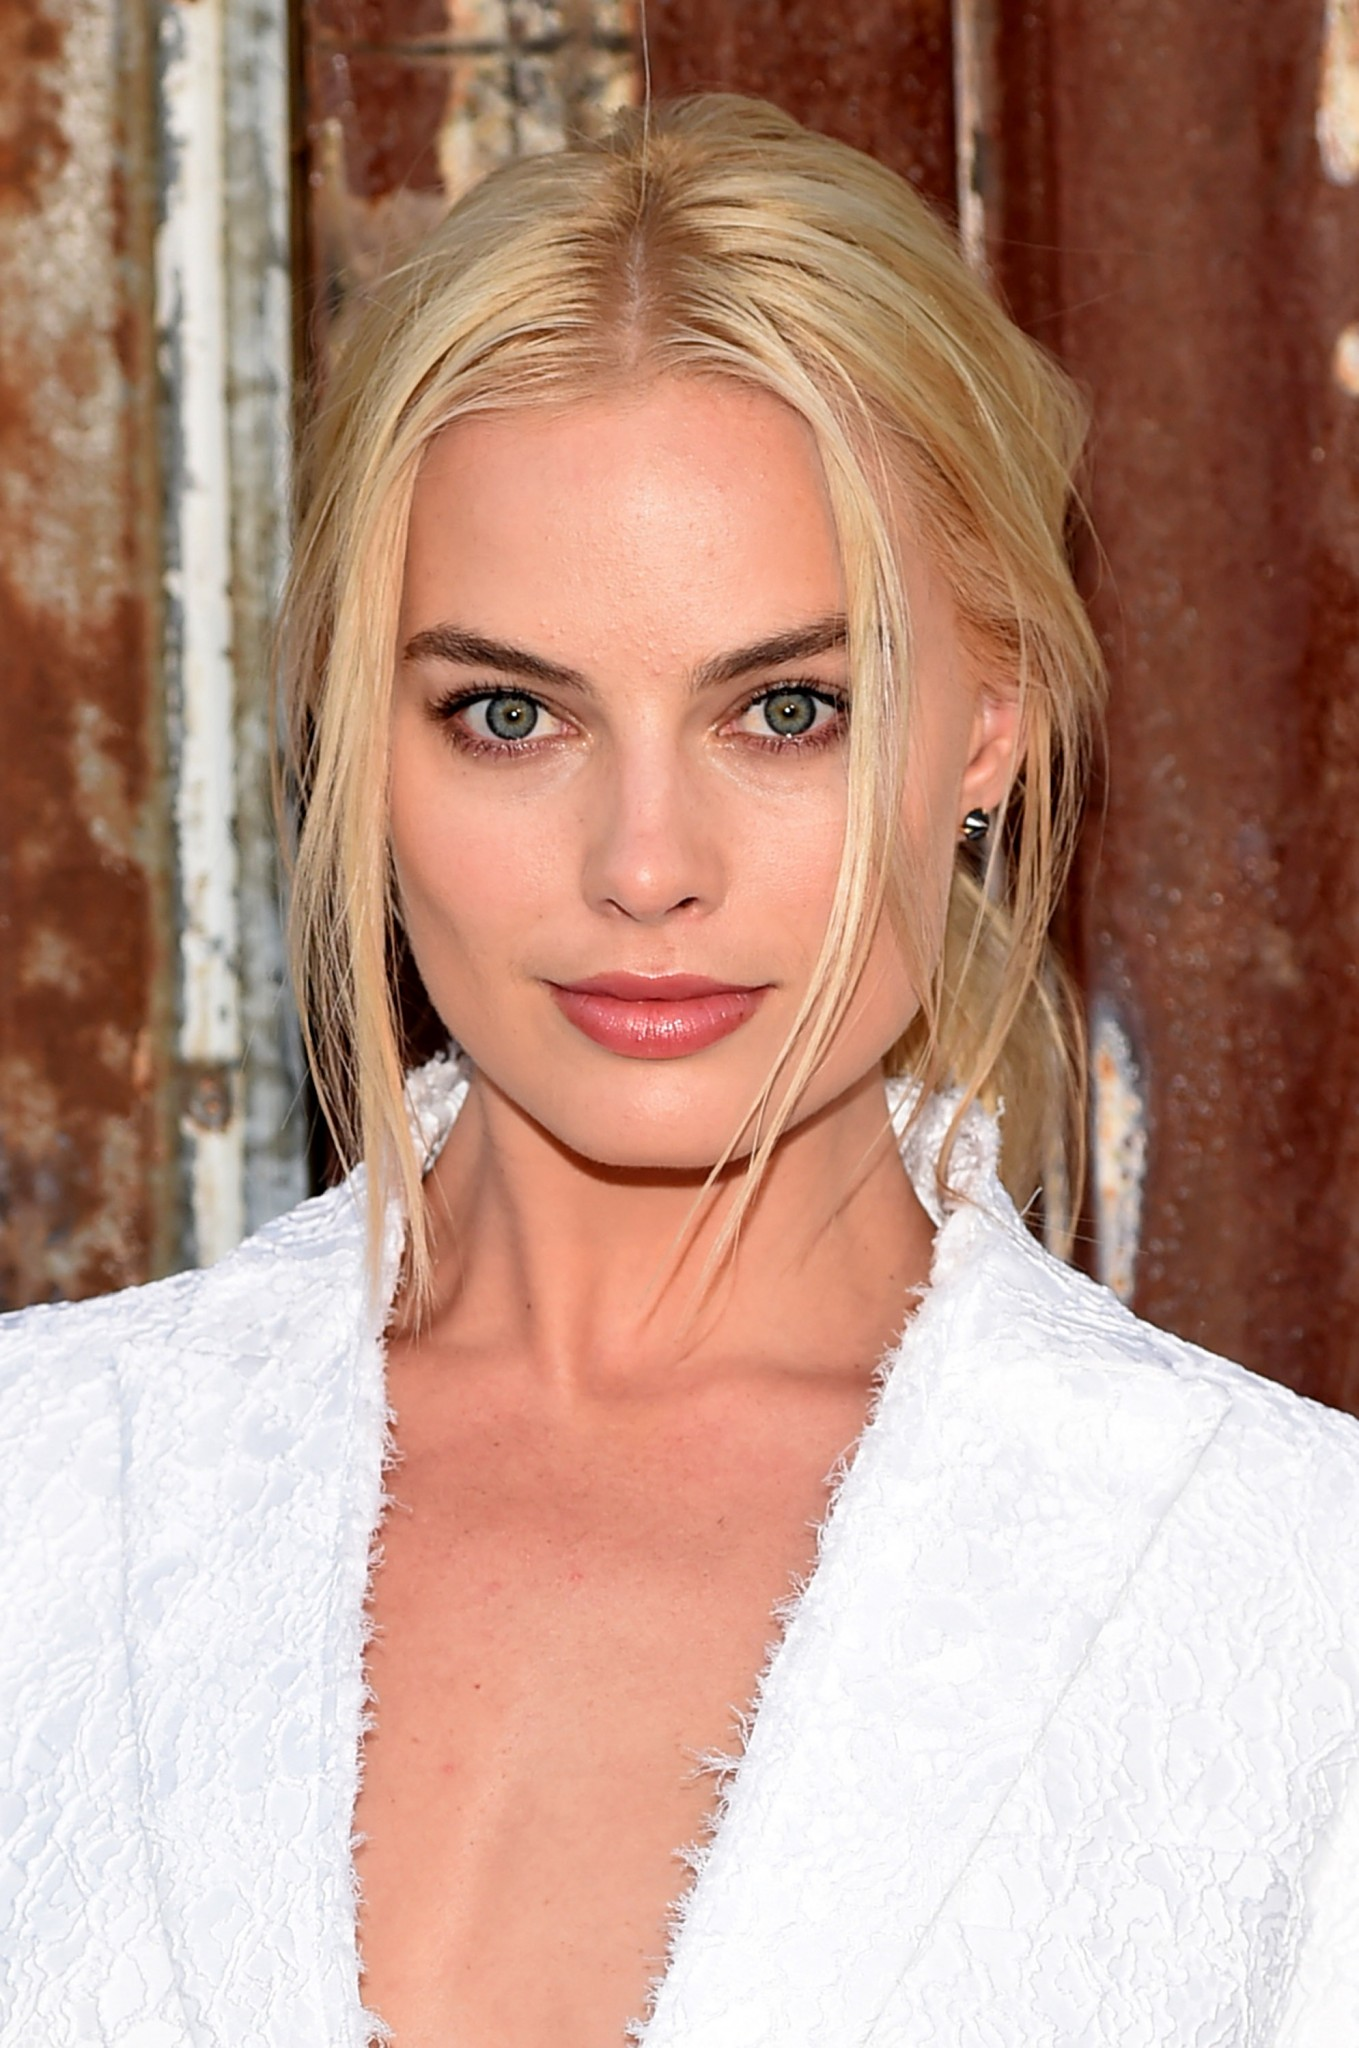 margot robbie - photo #19